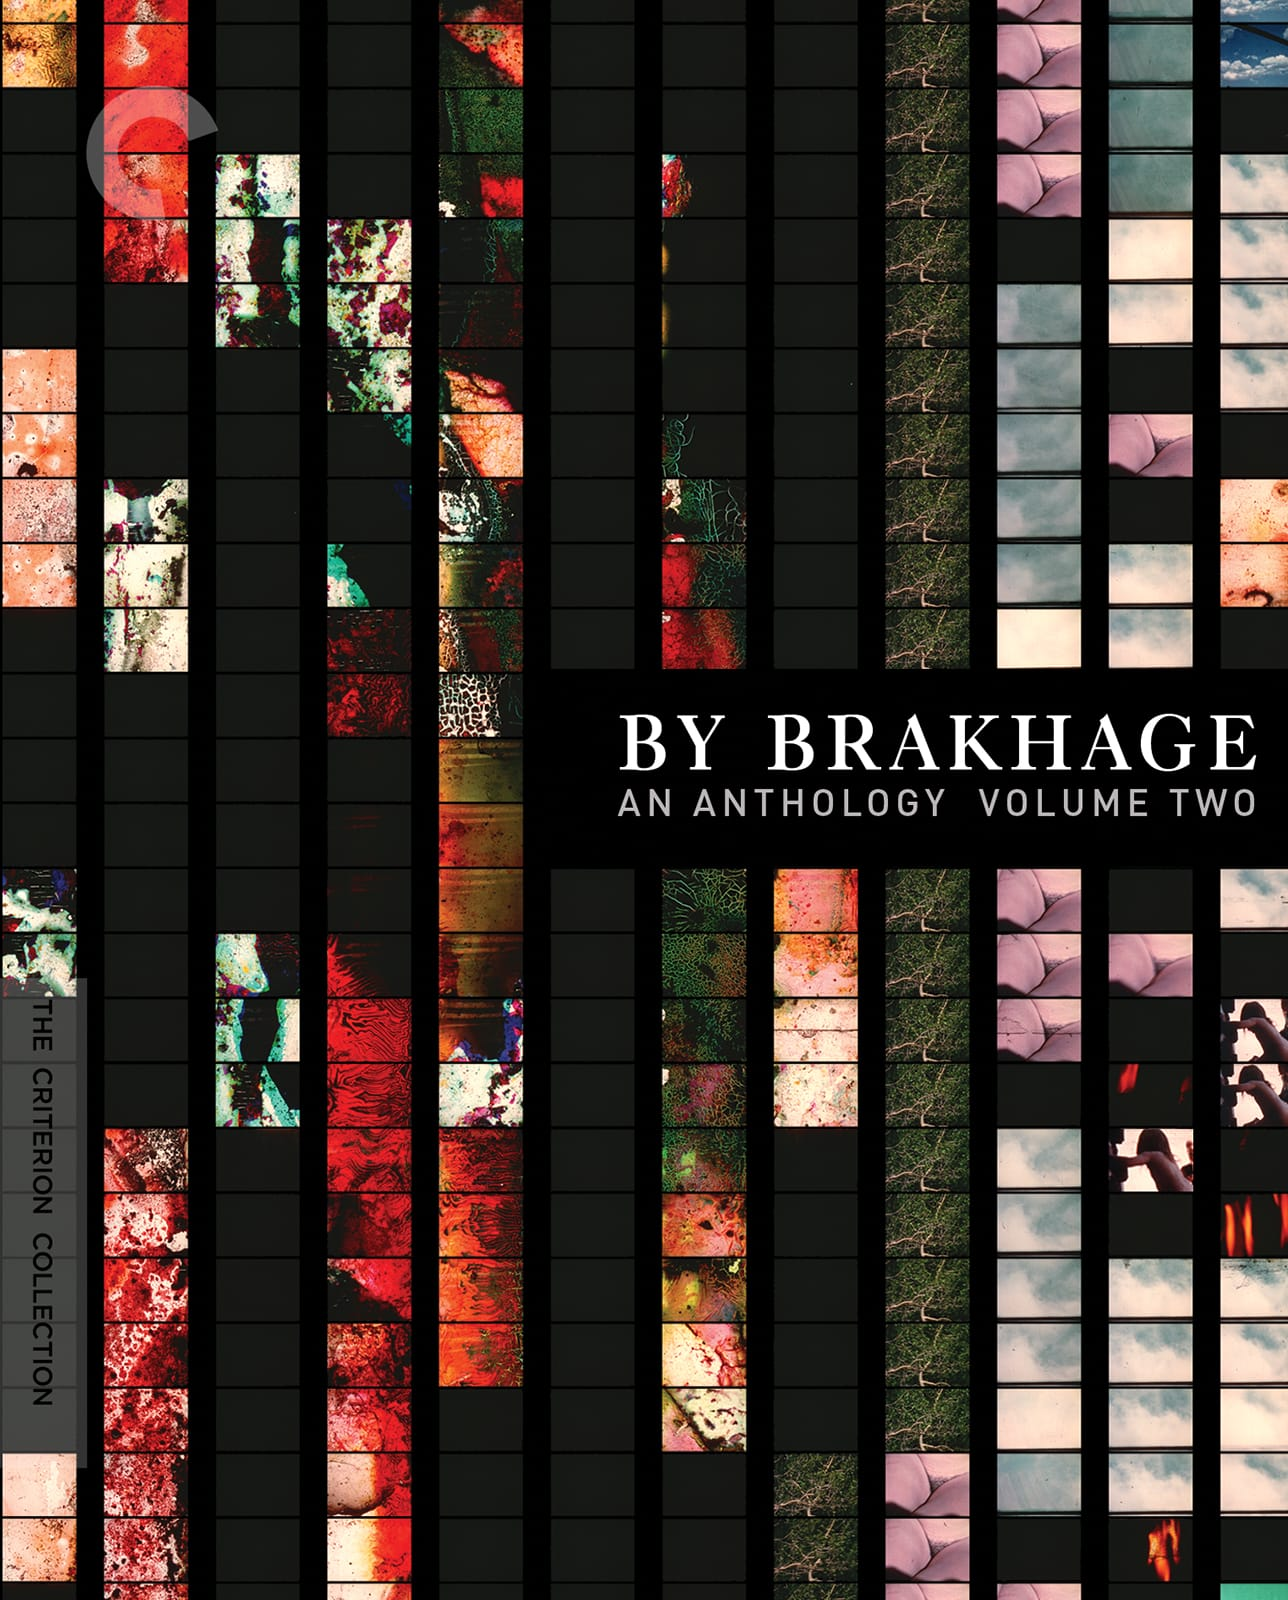 By Brakhage: An Anthology, Volume Two